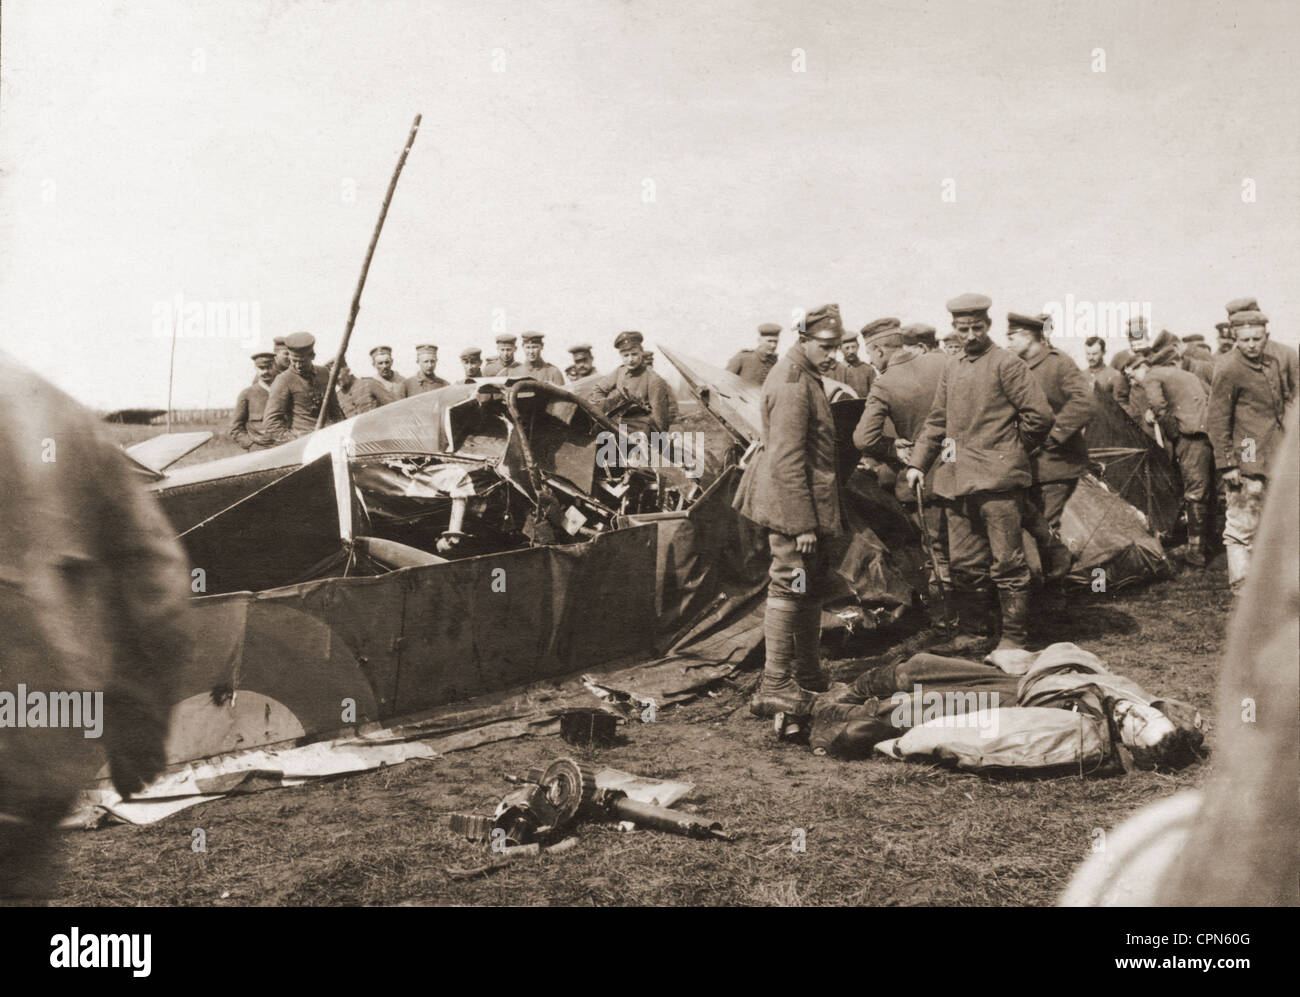 First World War / WWI, German soldiers shooting an English aircraft, between Marcoing and Ribecourt, so called Siegfried - Stock Image